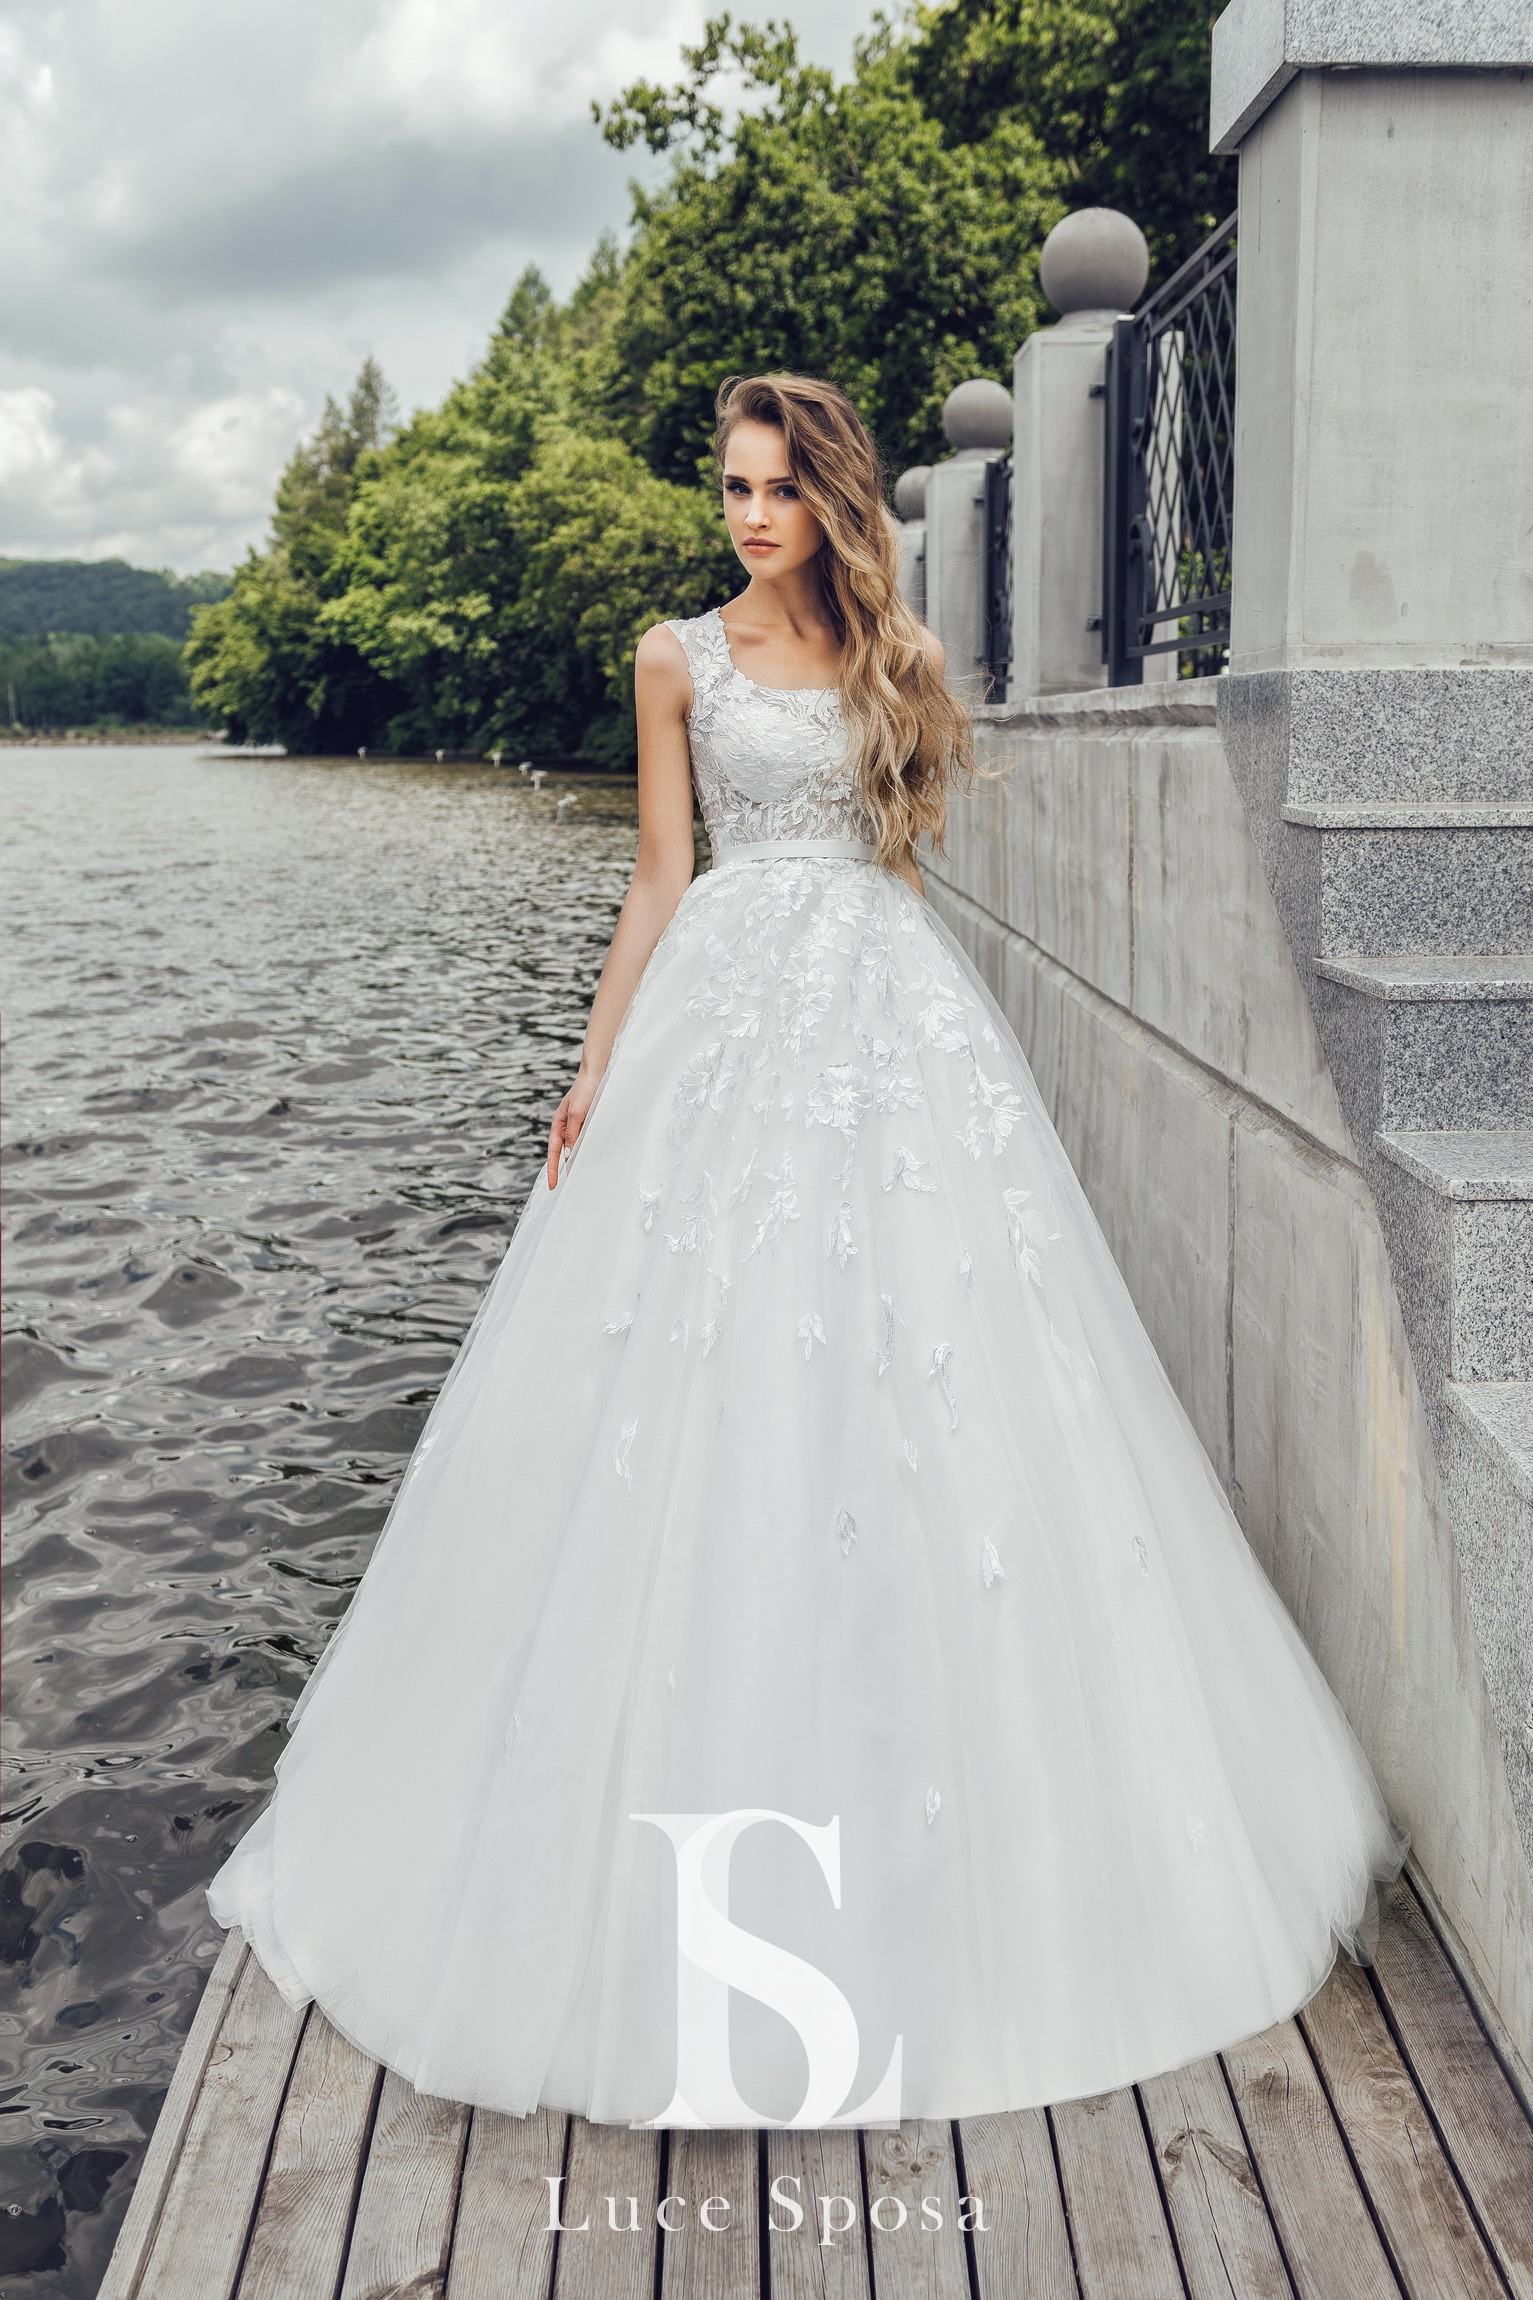 Wedding Dresses «Elauisa»-2